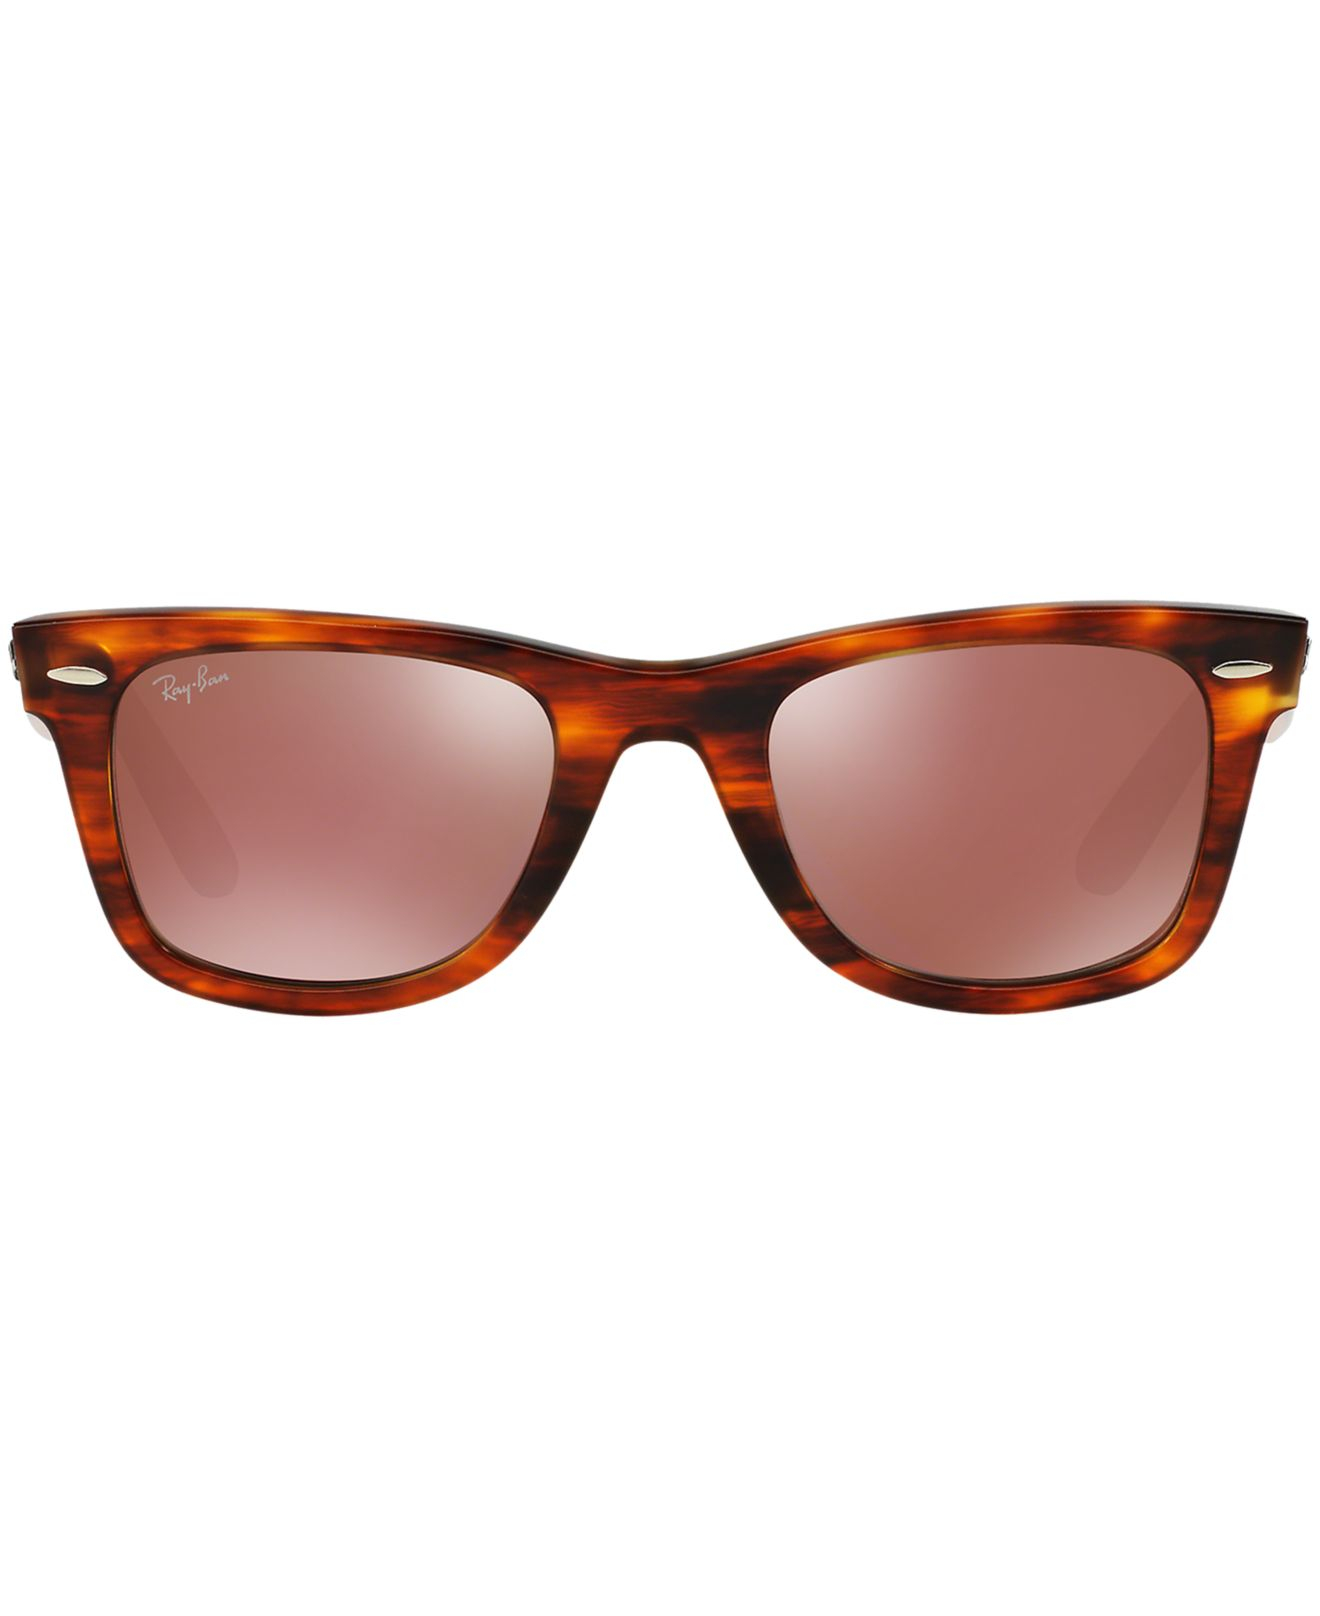 Lyst - Ray-Ban Rb2140 54 Original Wayfarer in Brown